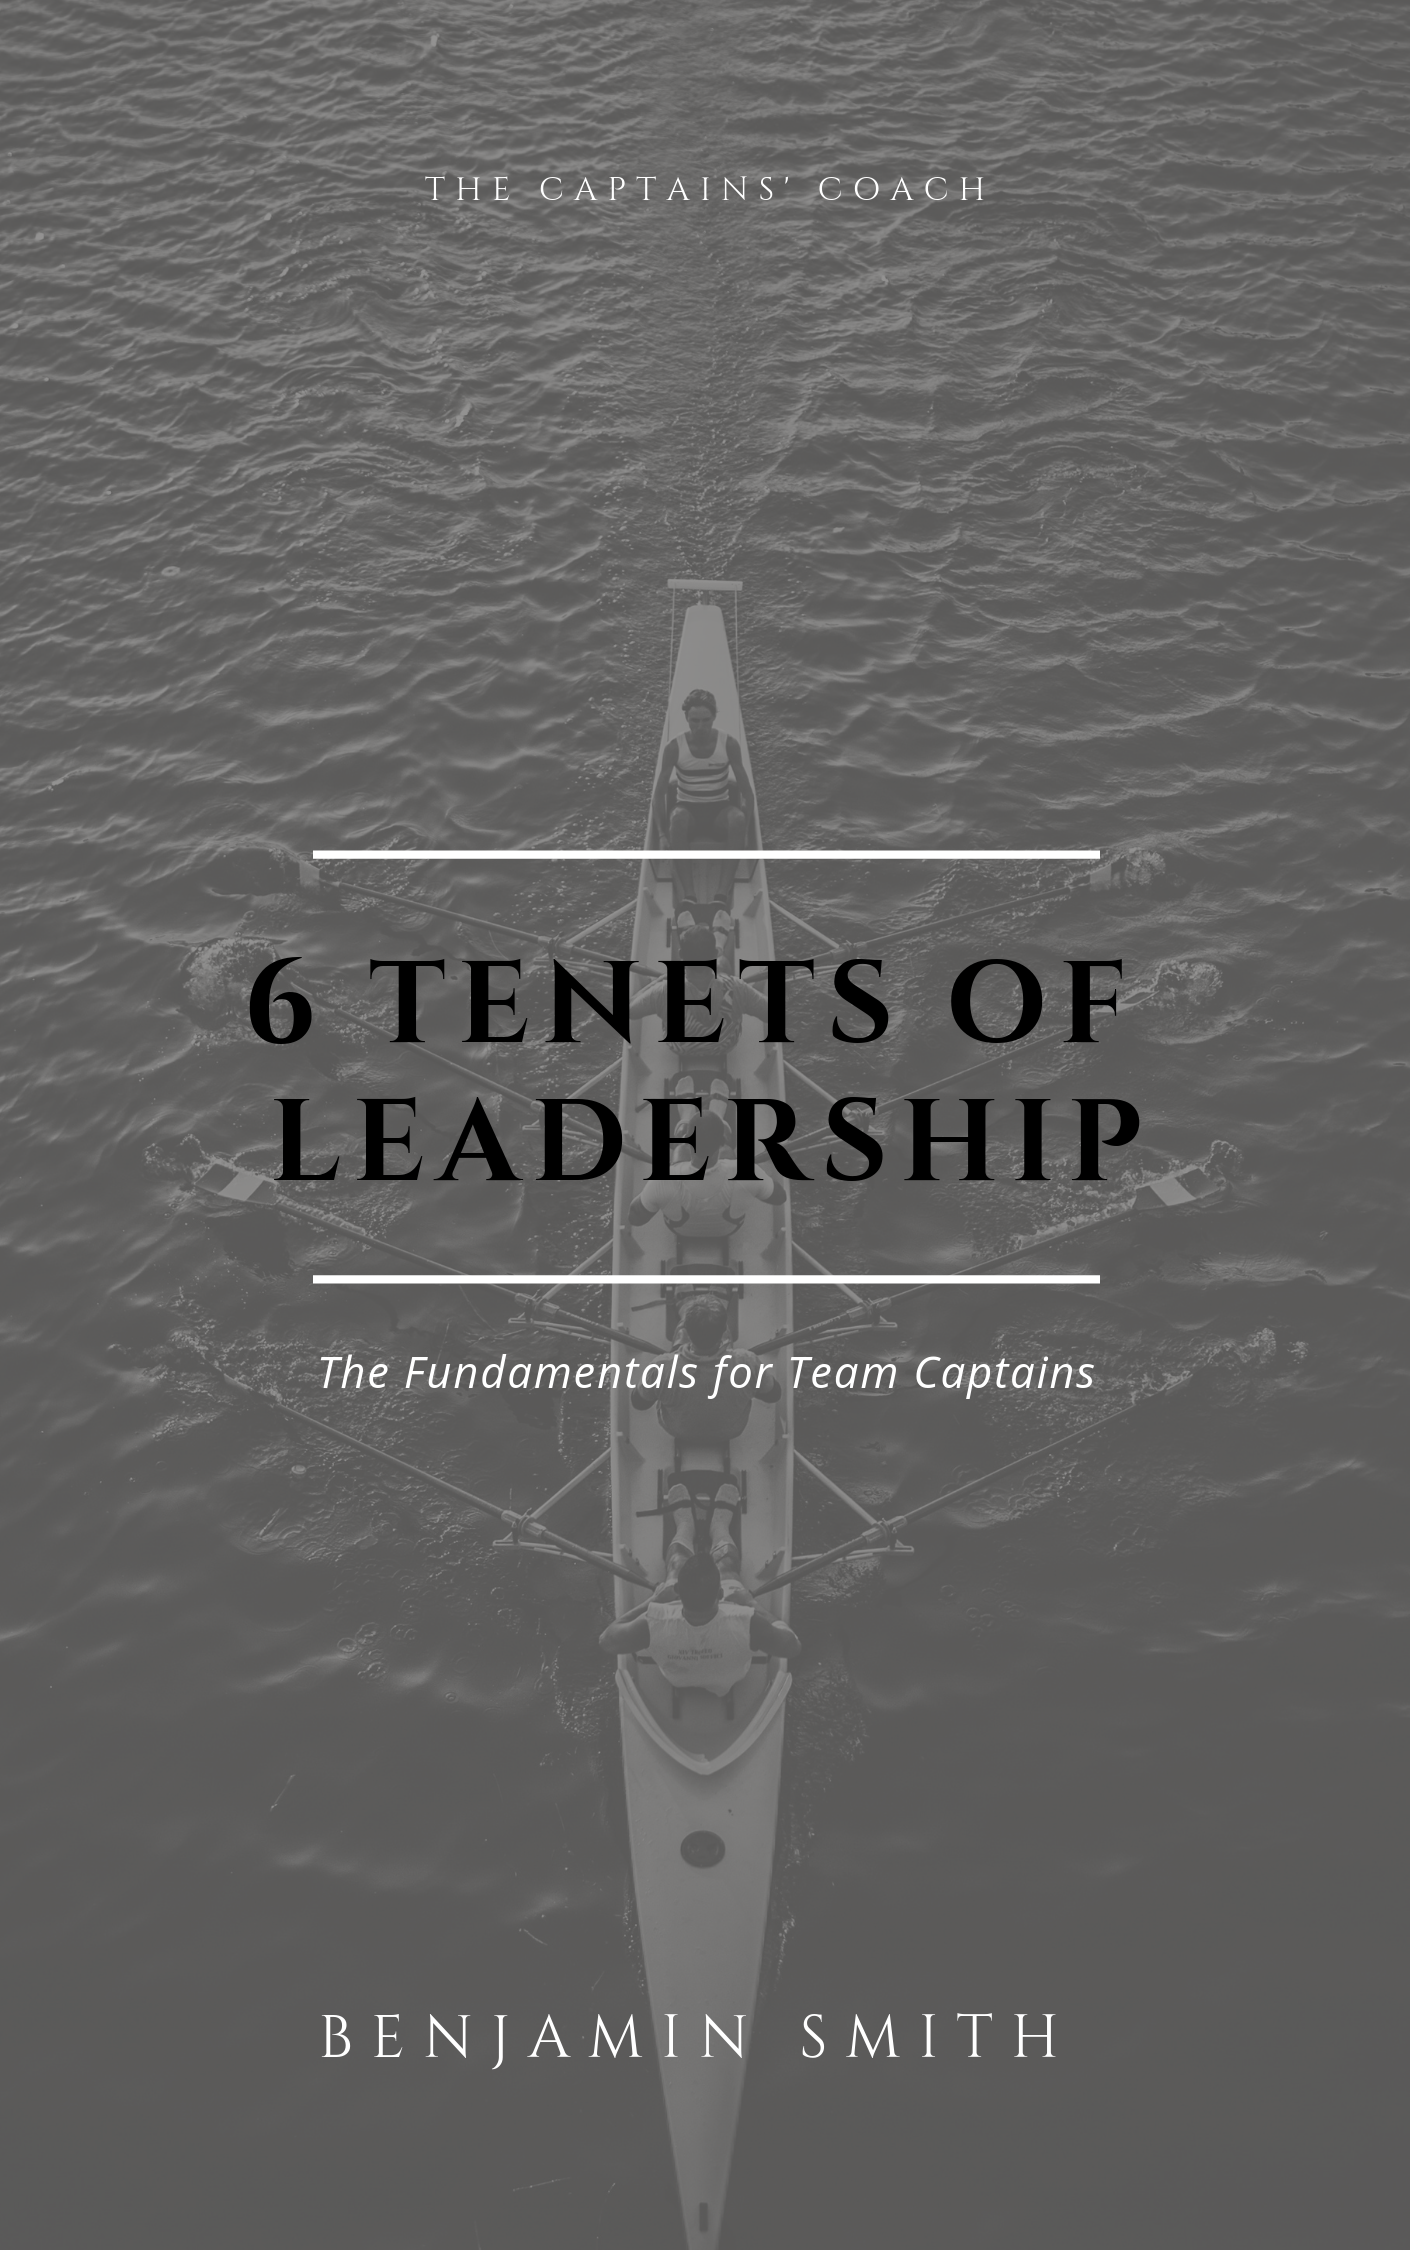 6 Tenets of leadership.png